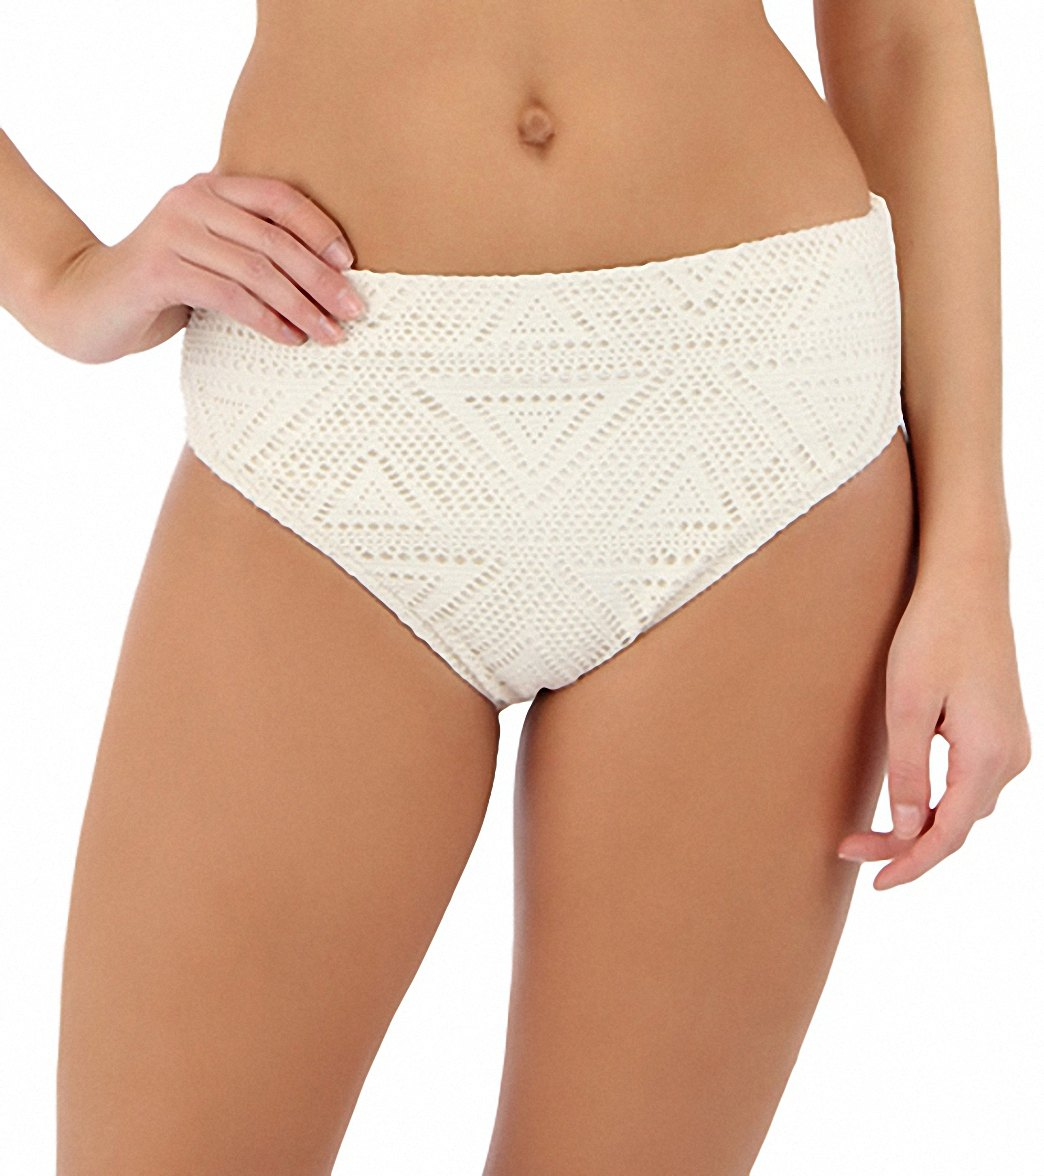 b4e93ab9114e6 Sunsets Swimwear White Chocolate Seamless High Waist Bikini ...